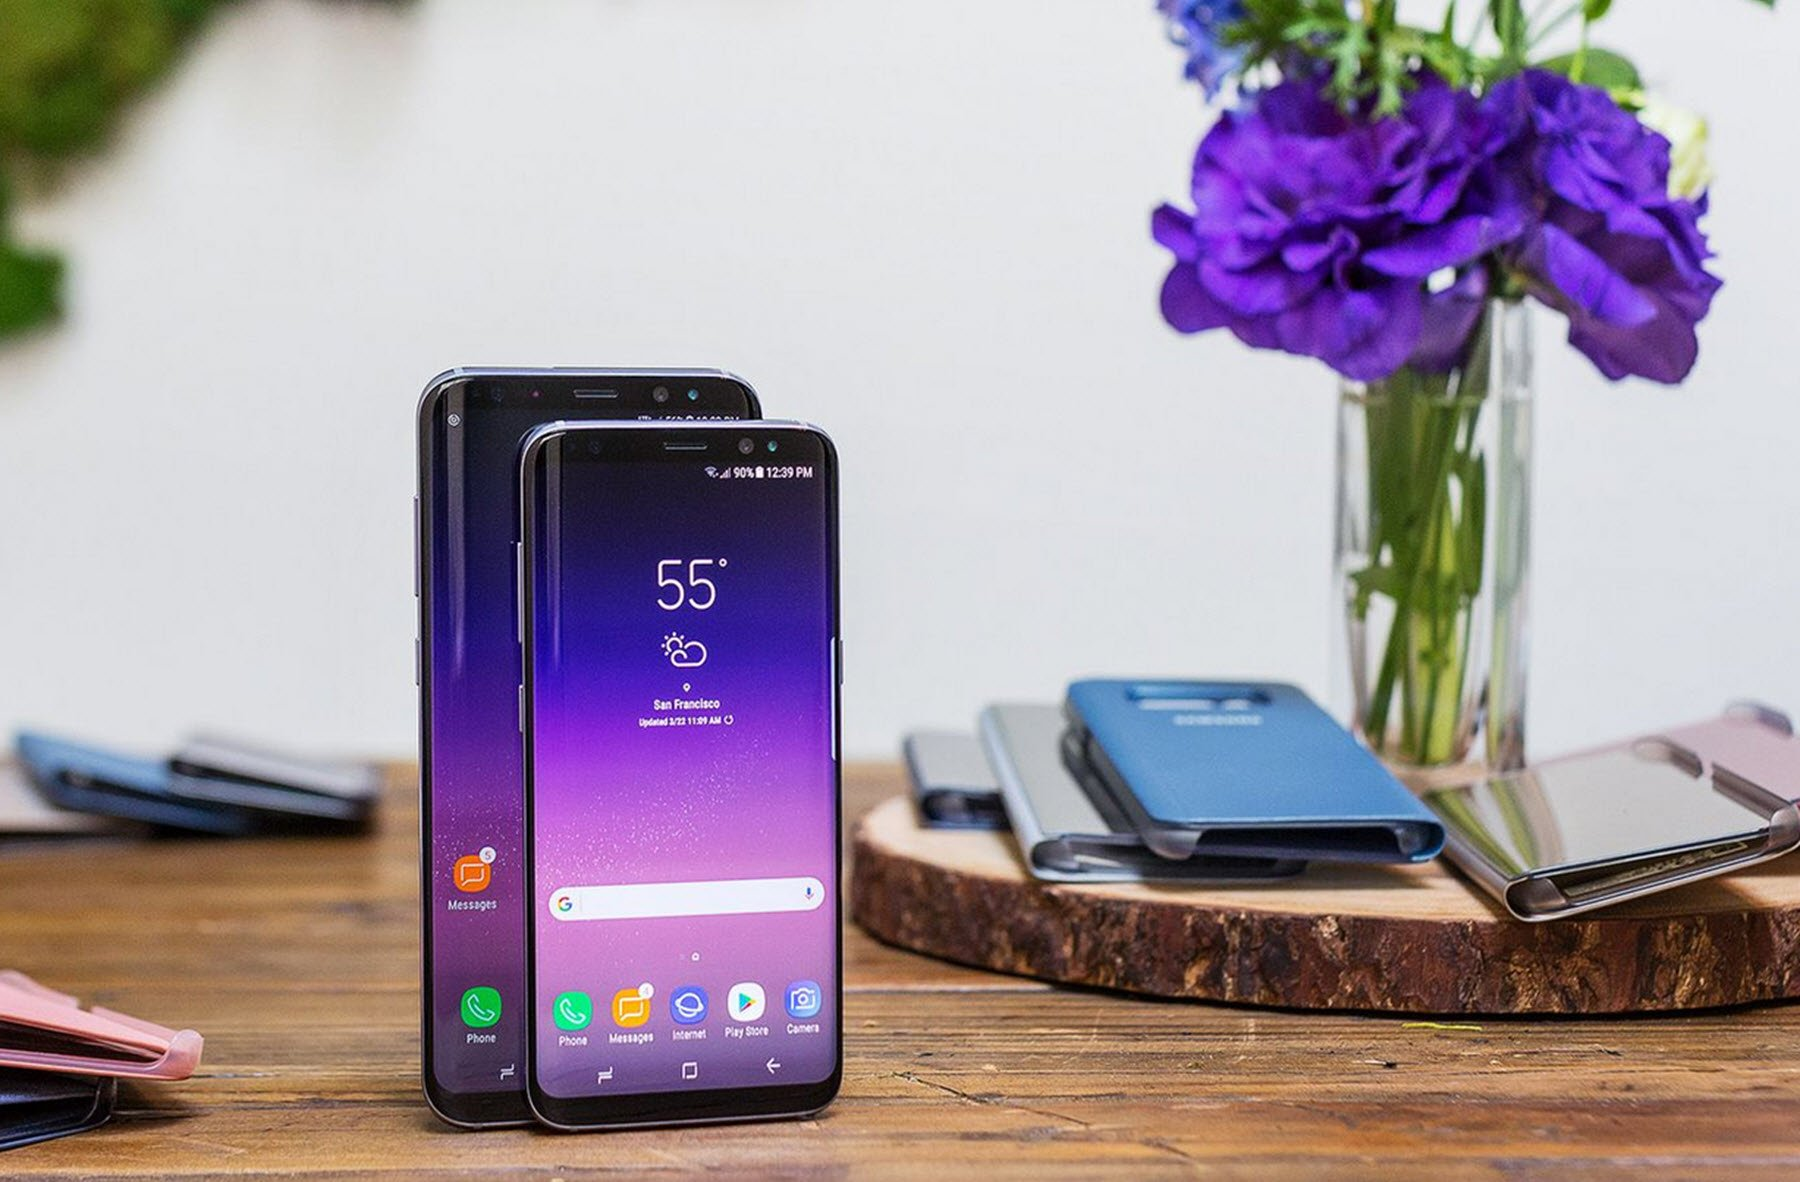 The Samsung Galaxy S8 and S8+ are finally here: Check out pricing